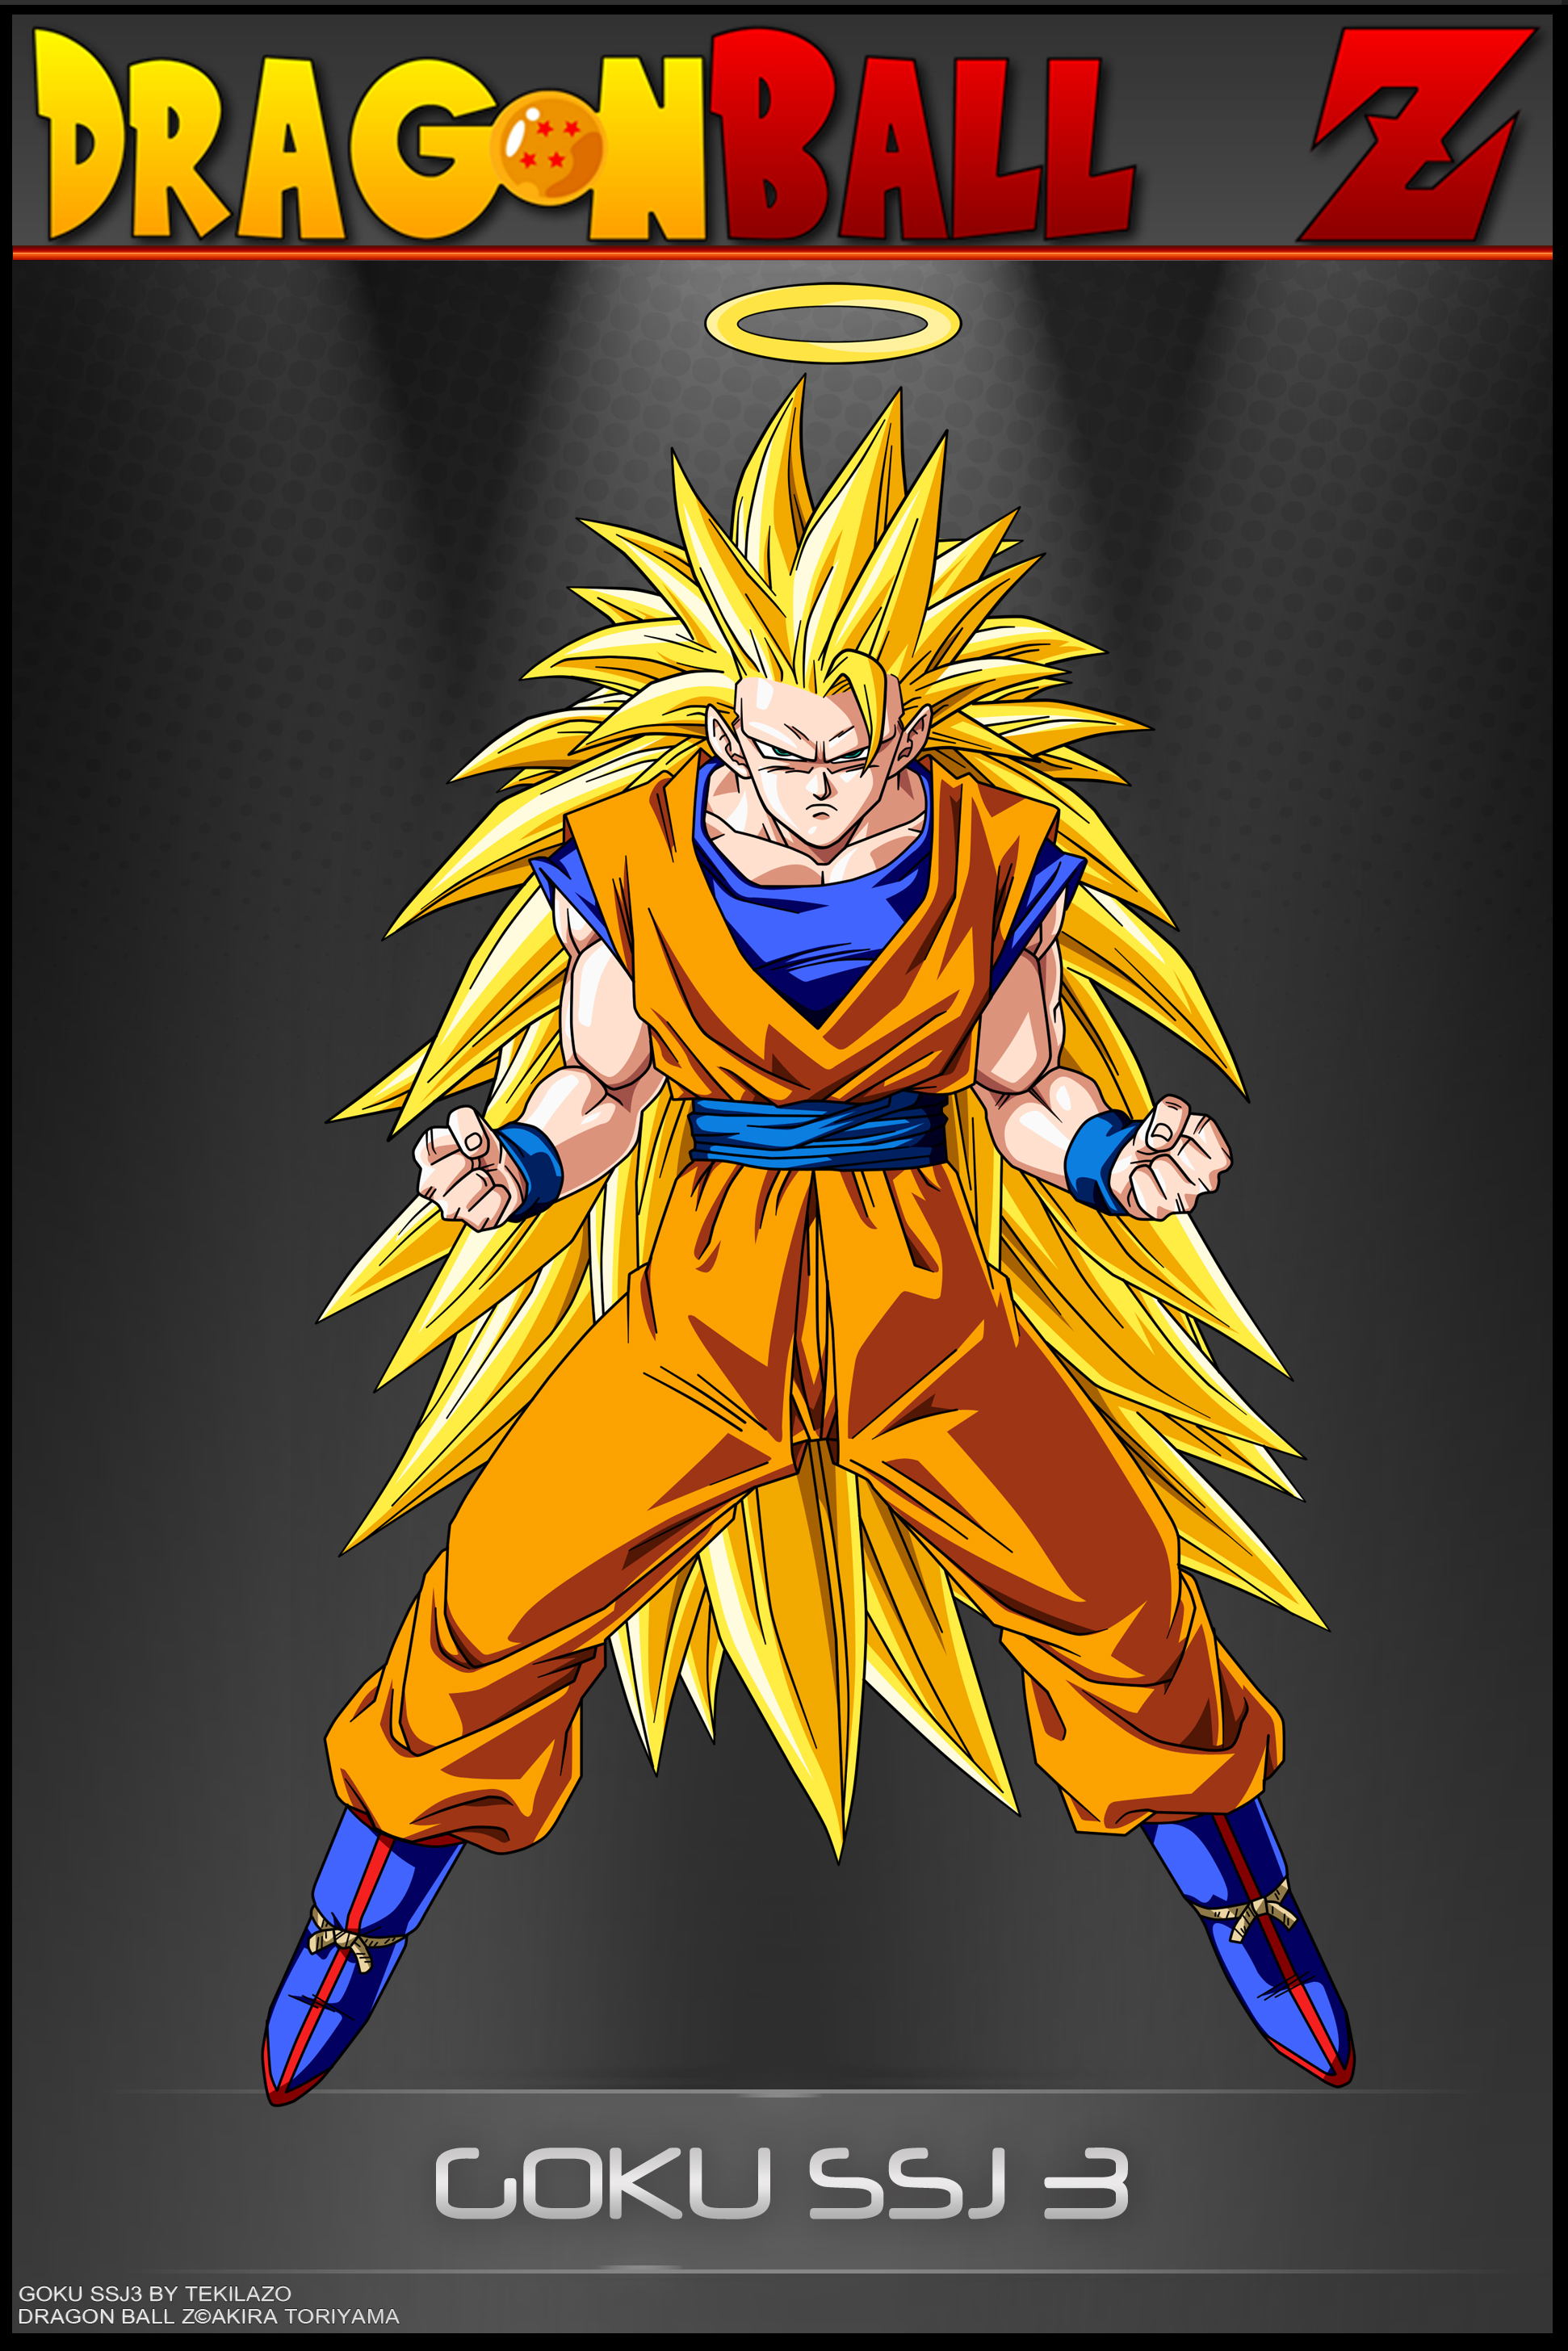 Dragon ball z goku wallpapers high quality download free - Dragon bale z ...